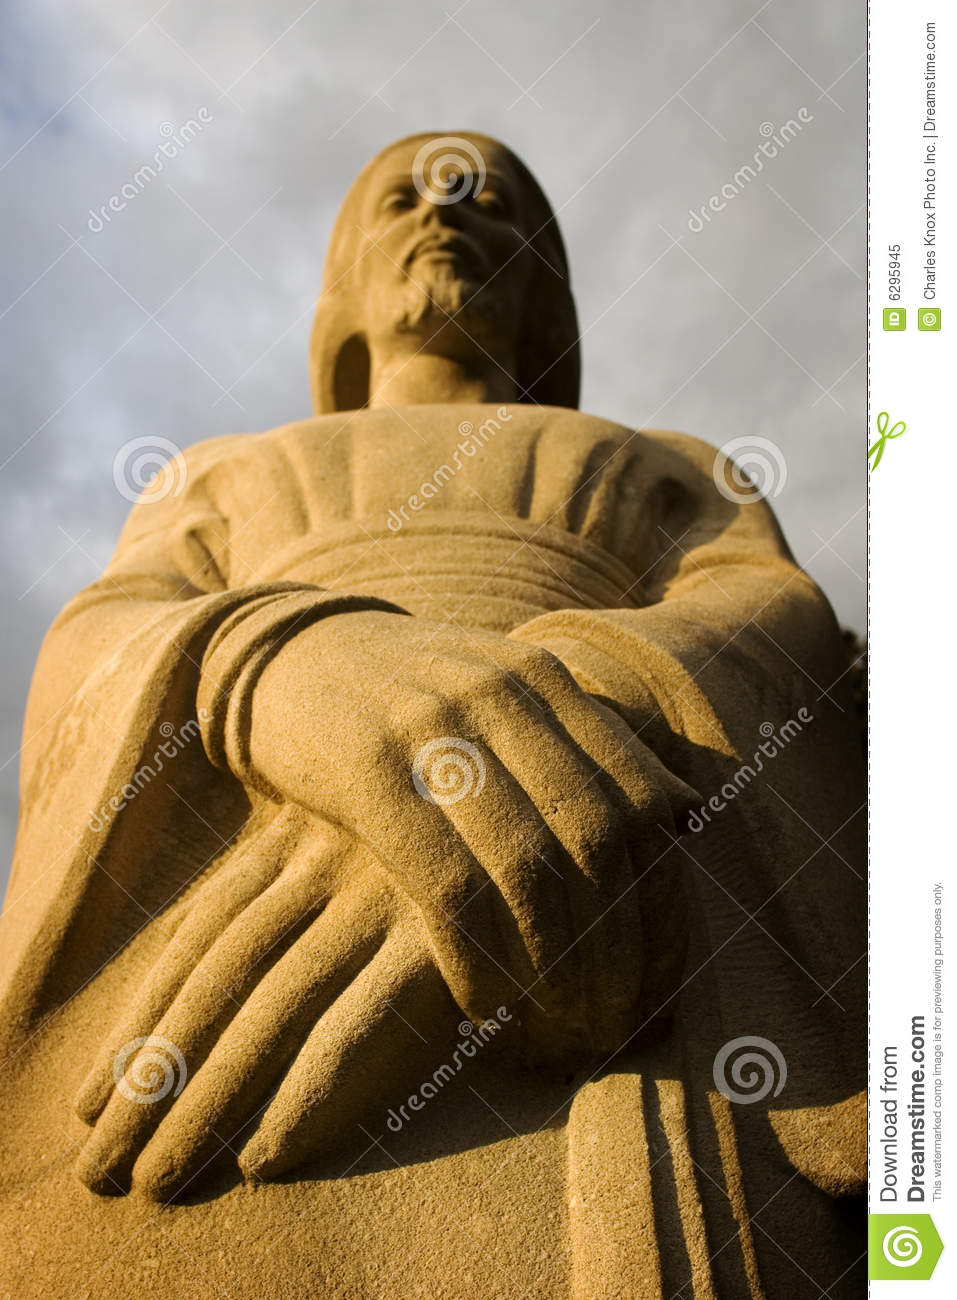 Statue Of Religious Figure Royalty Free Stock Photo - Image: 6295945